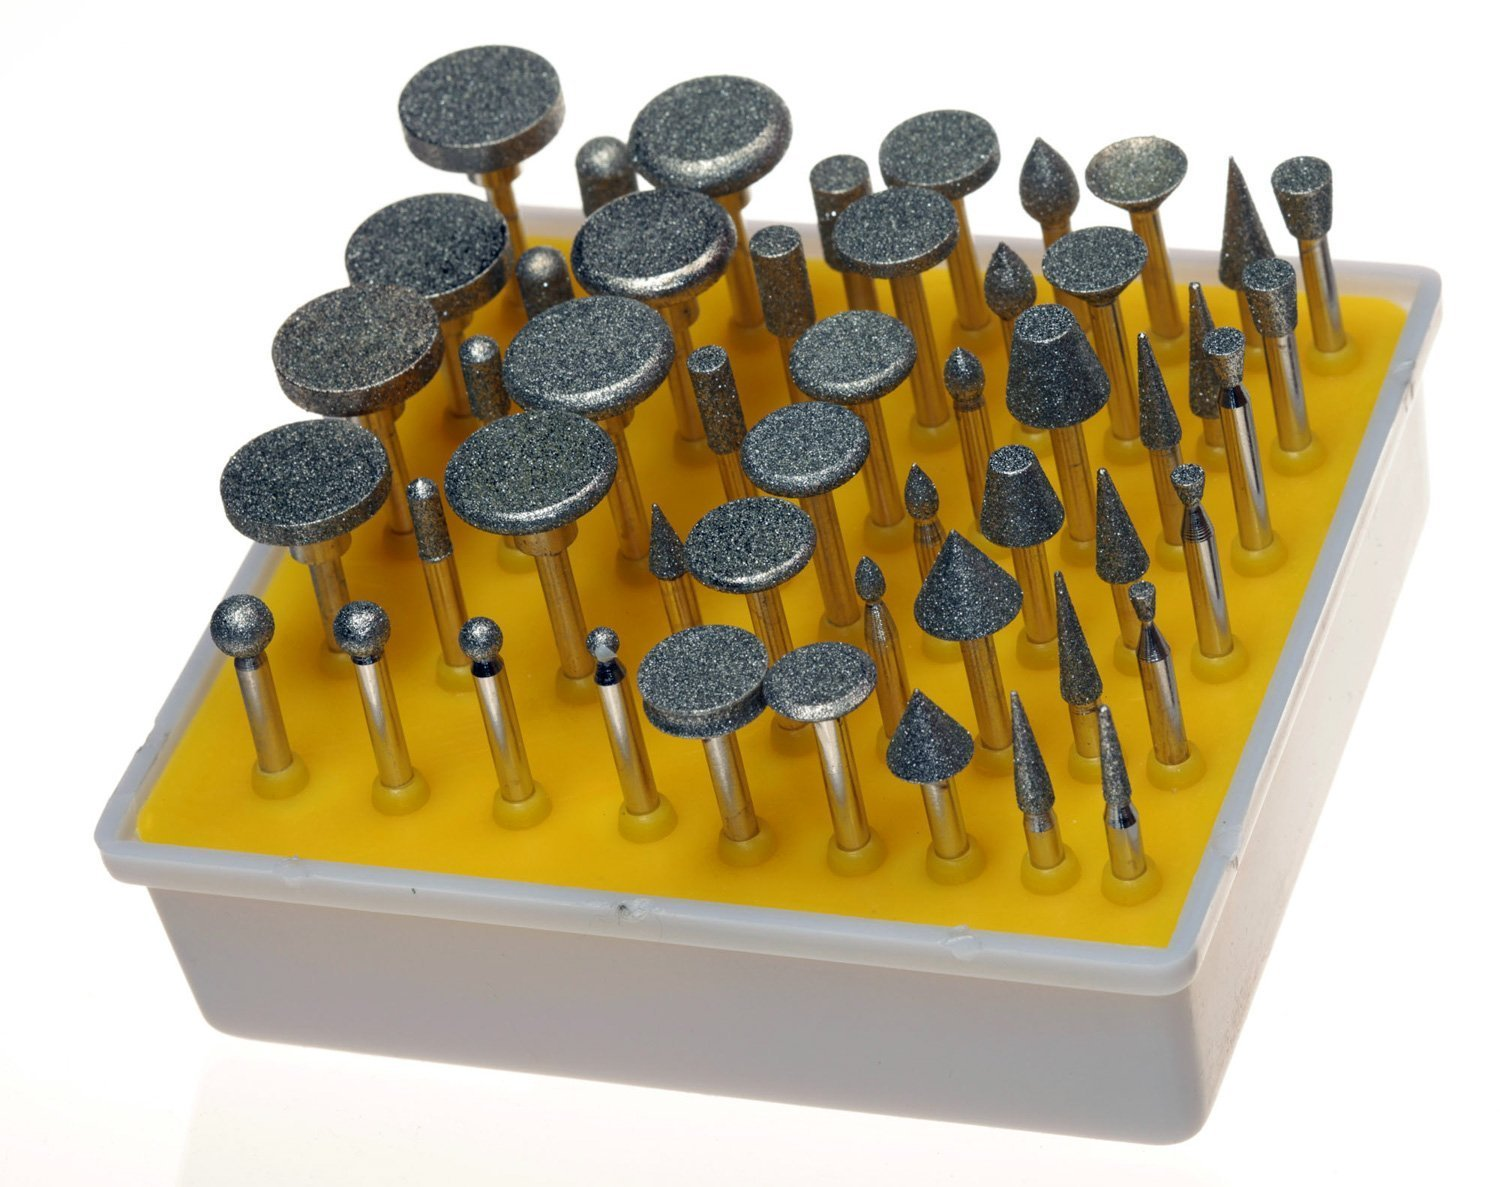 Preamer 50pcs 1/8'' Shank Diamond Coated Rotary Grinding Head Jewelry Lapidary Burr Set Polishing Buffing Bits Fits Dremel Tool Accessories Attachment